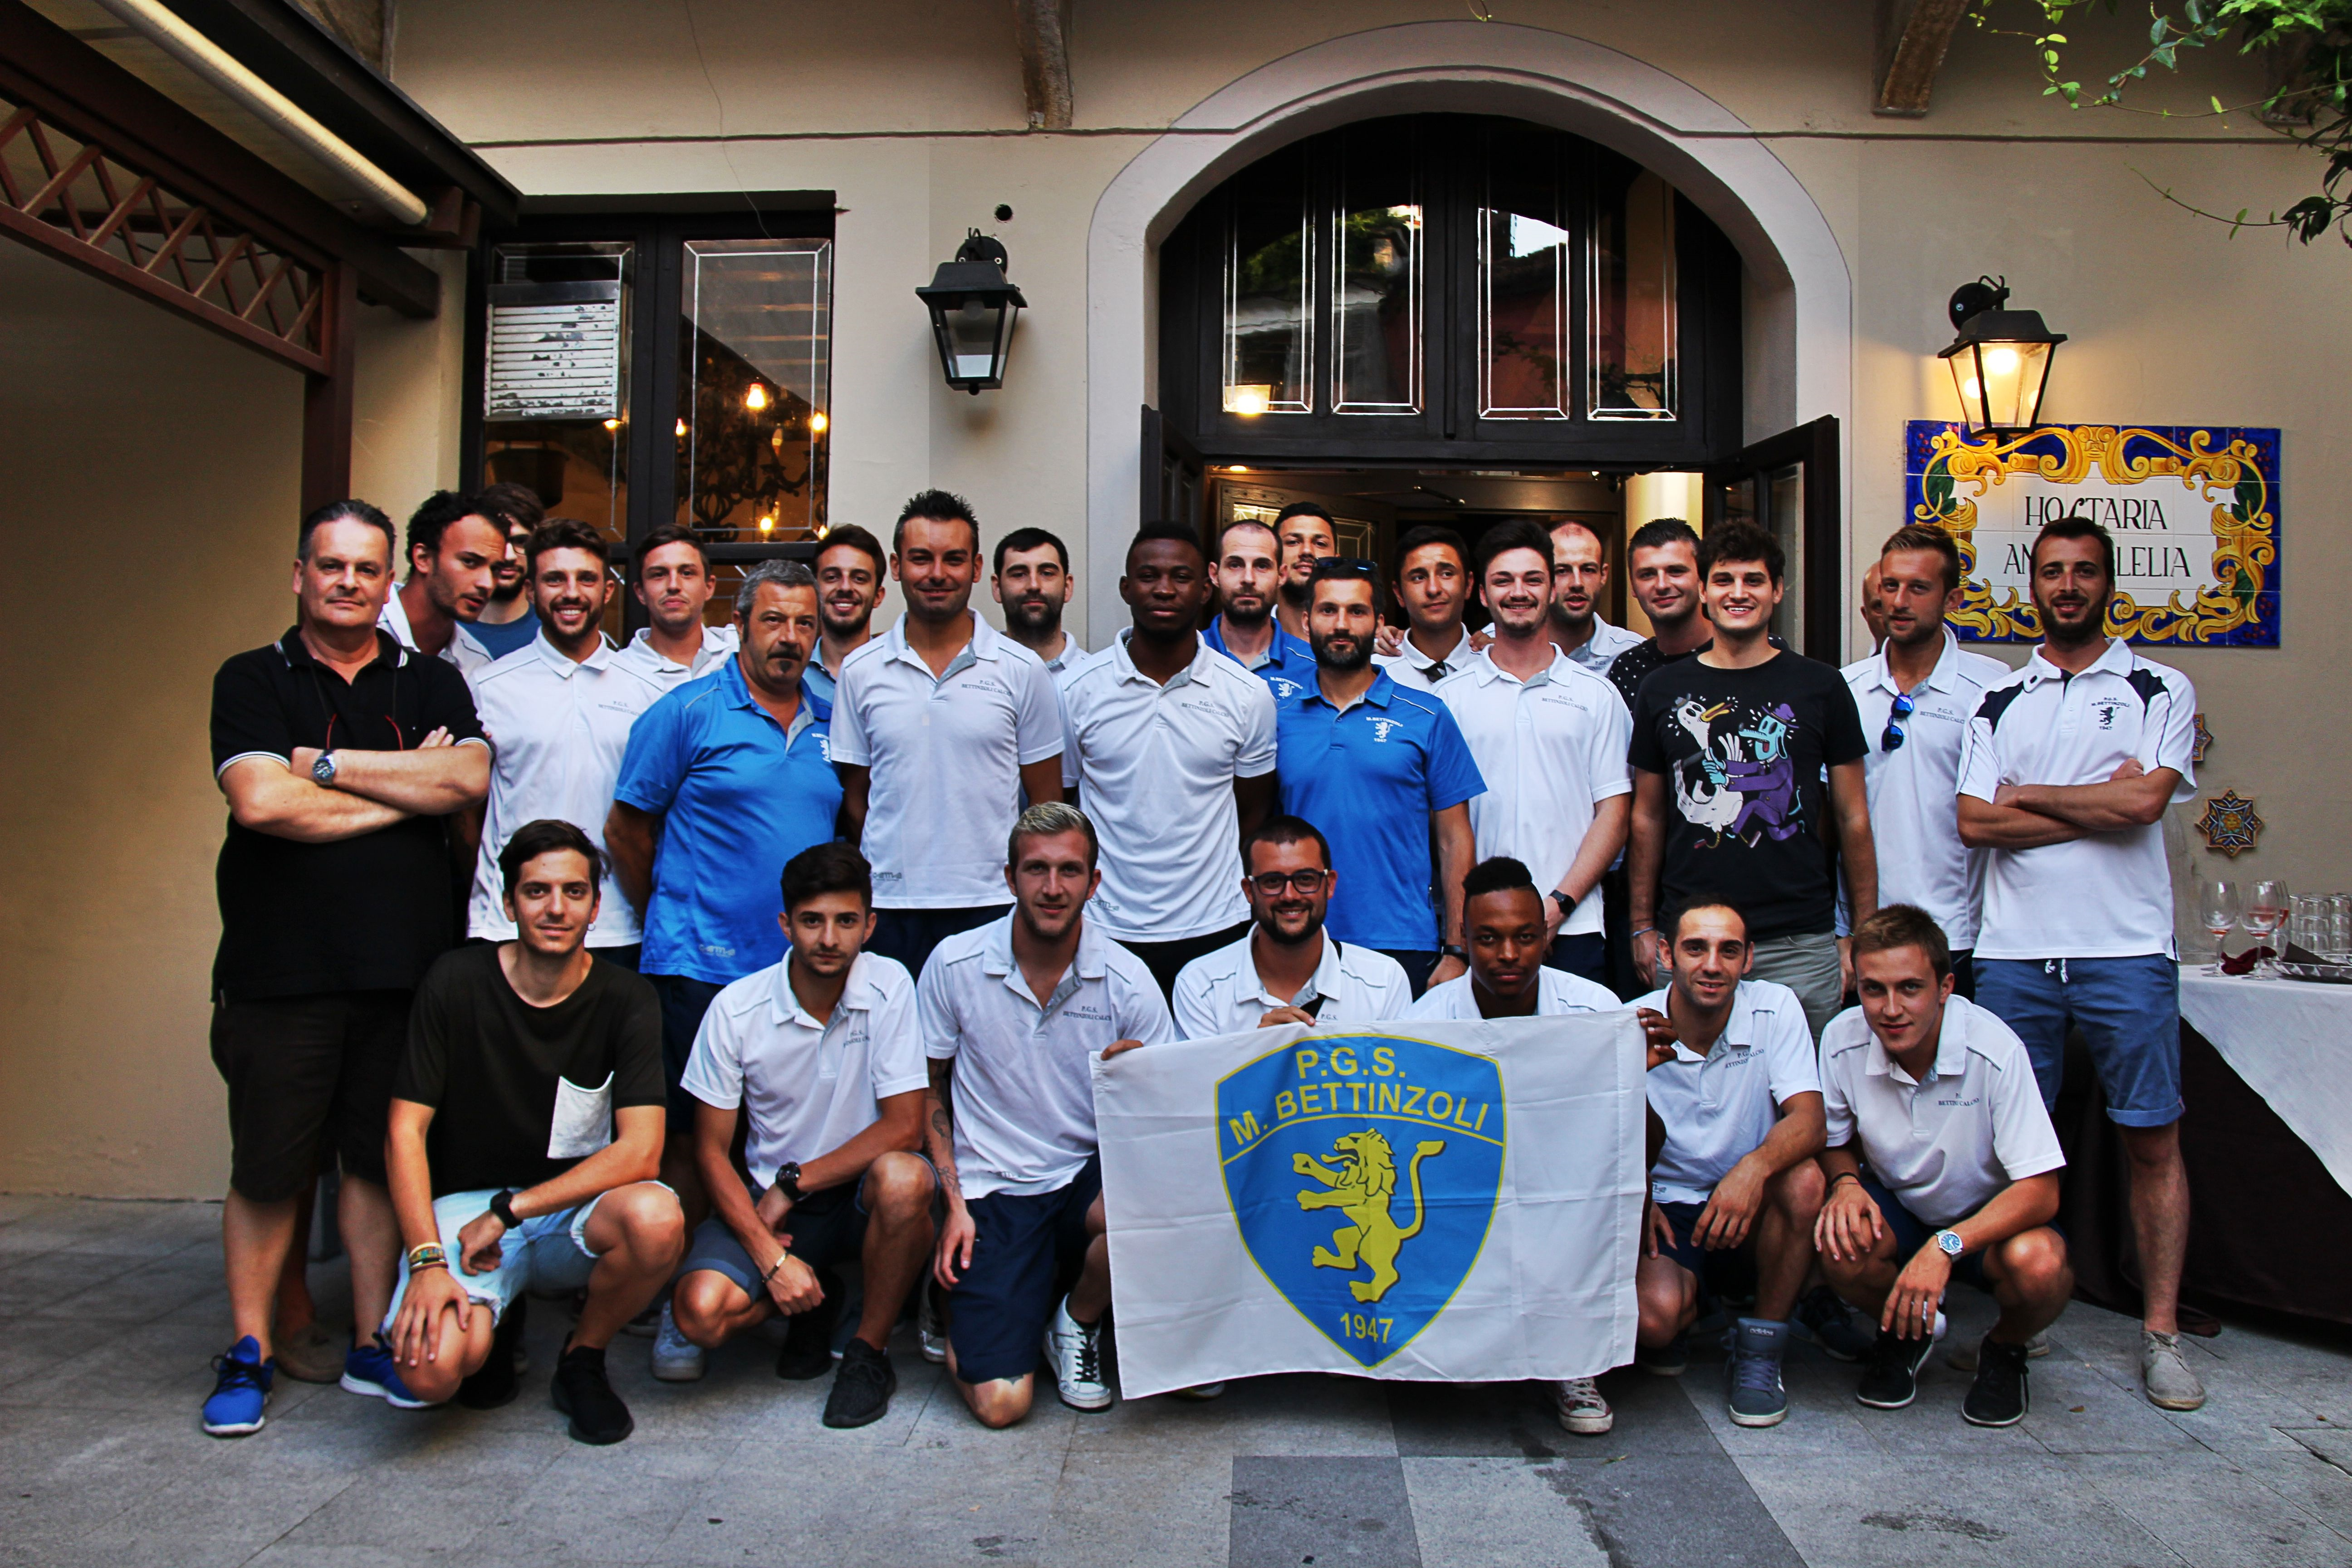 FOTO PRESENTAZIONE TERZA CATEGORIA M. BETTINZOLI CALCIO